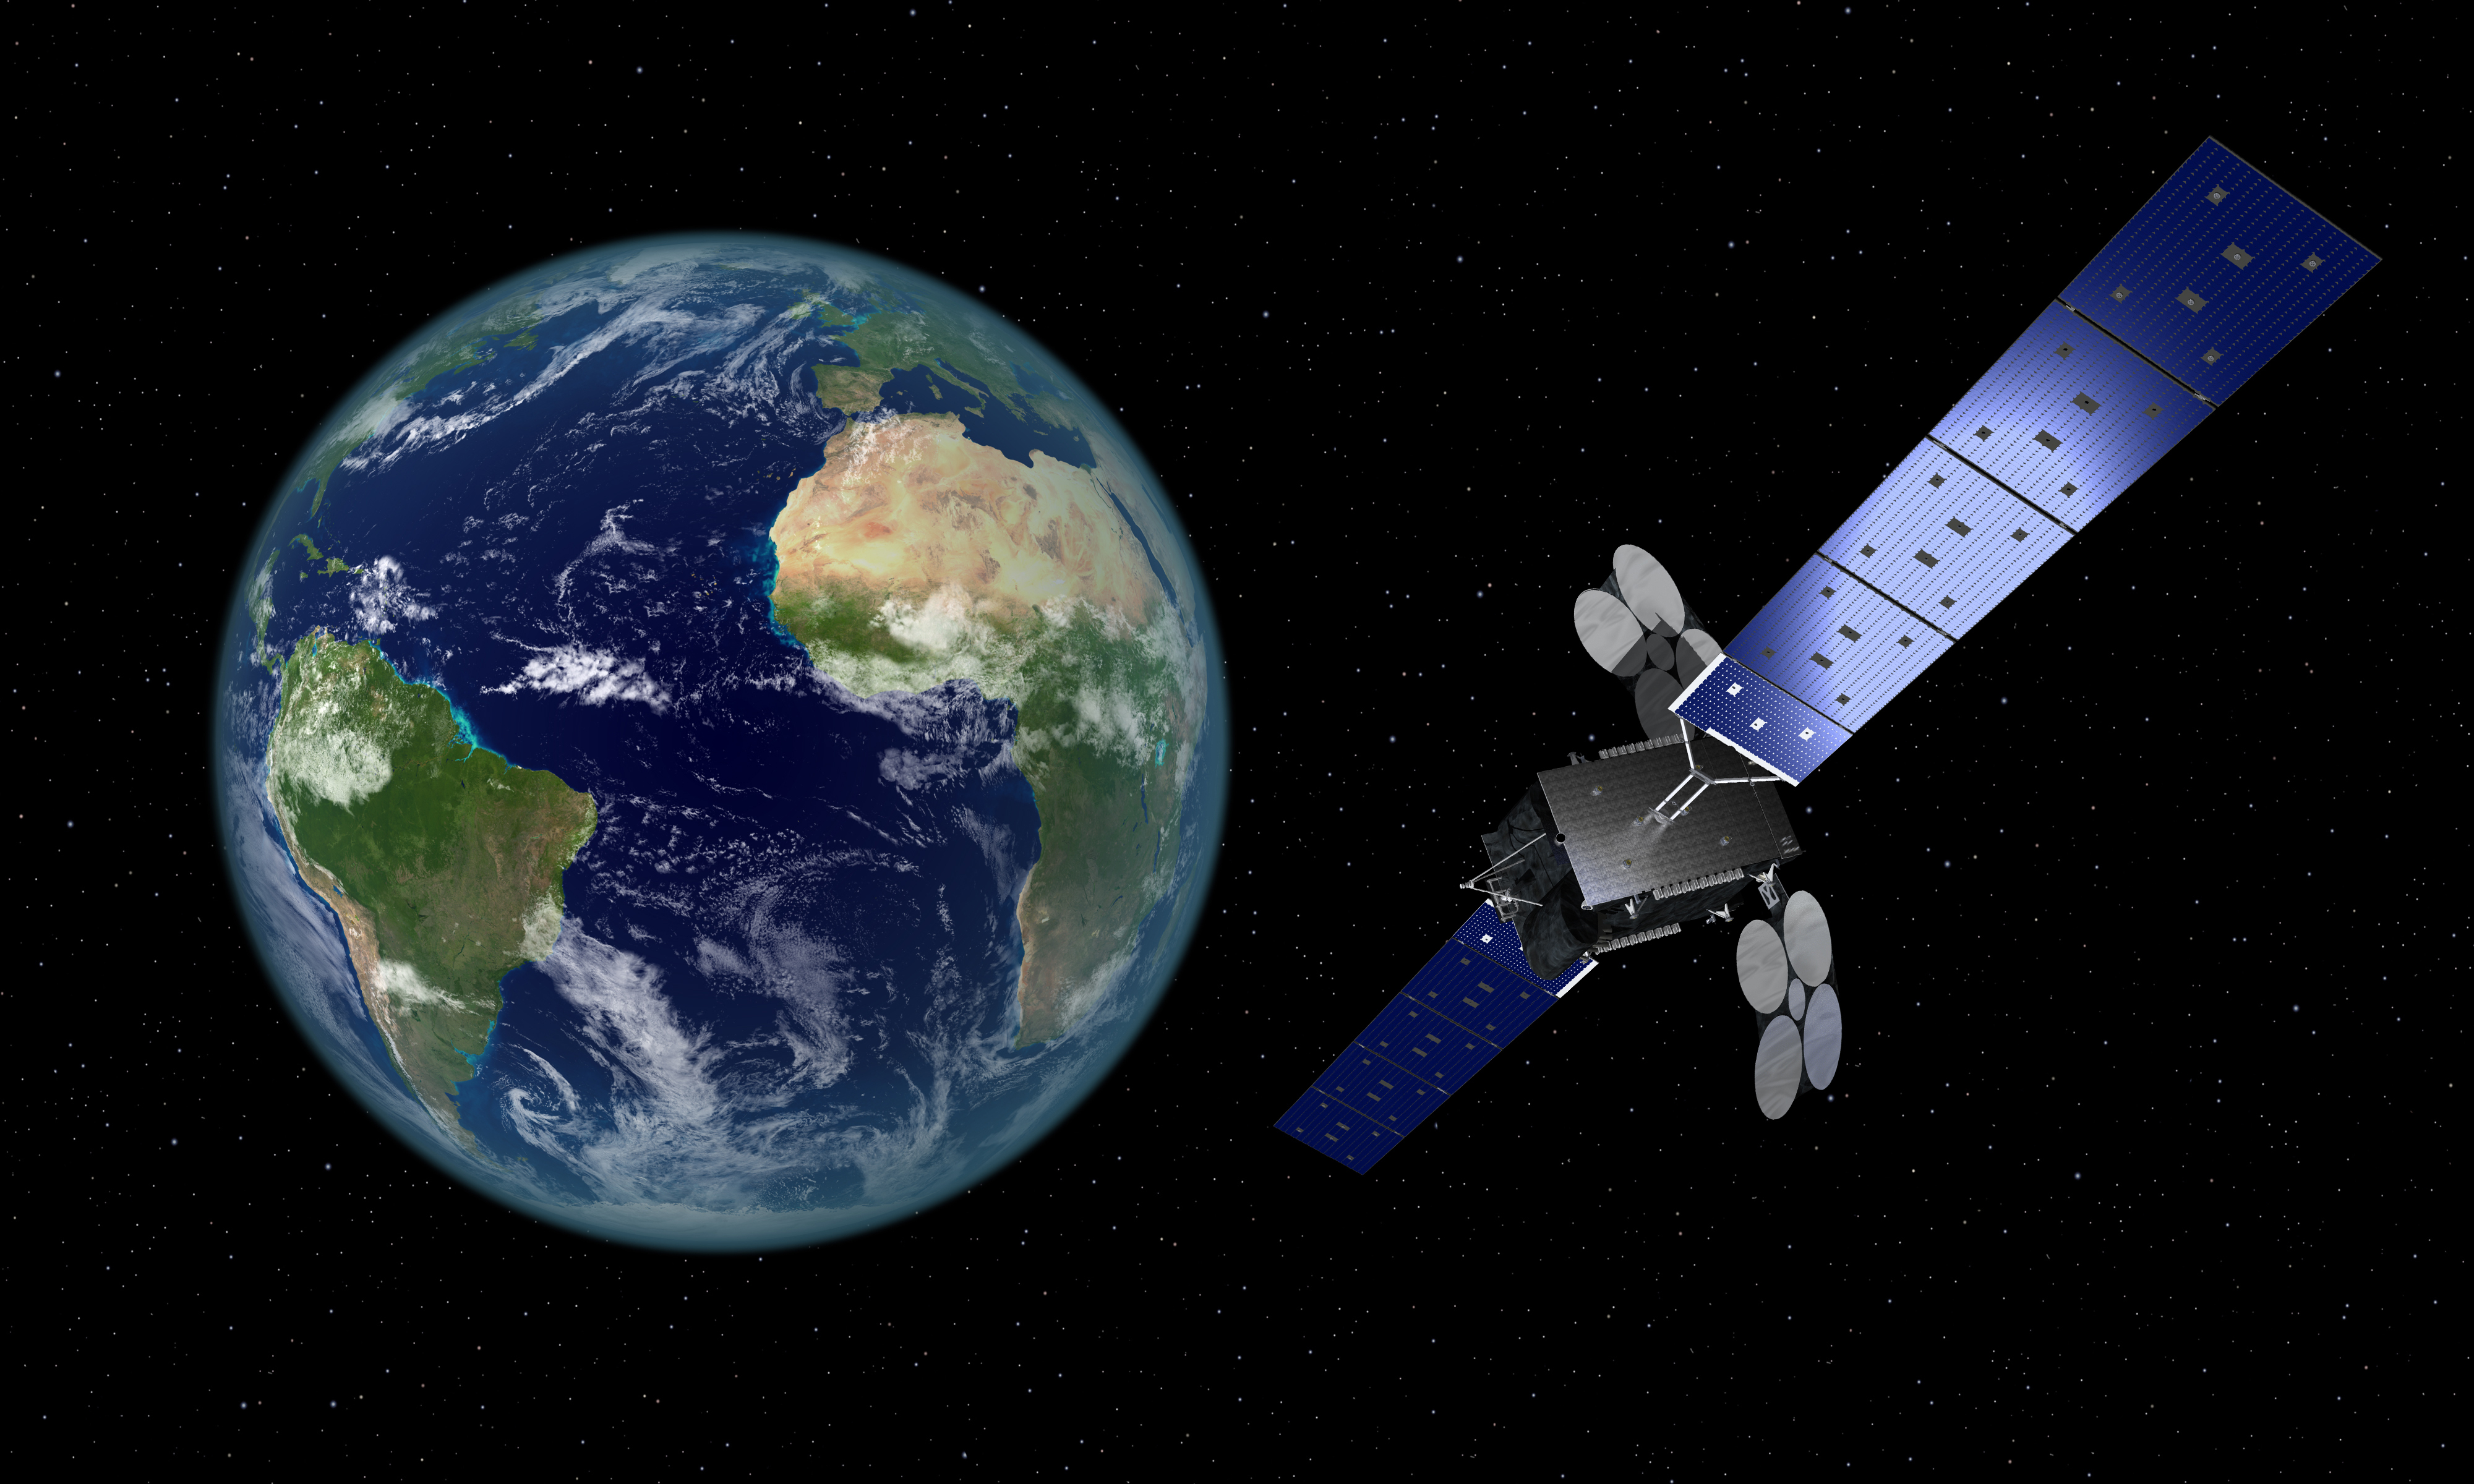 Orbital Selected by Yahsat to Build Al Yah 3 Communications Satellite | Business Wire